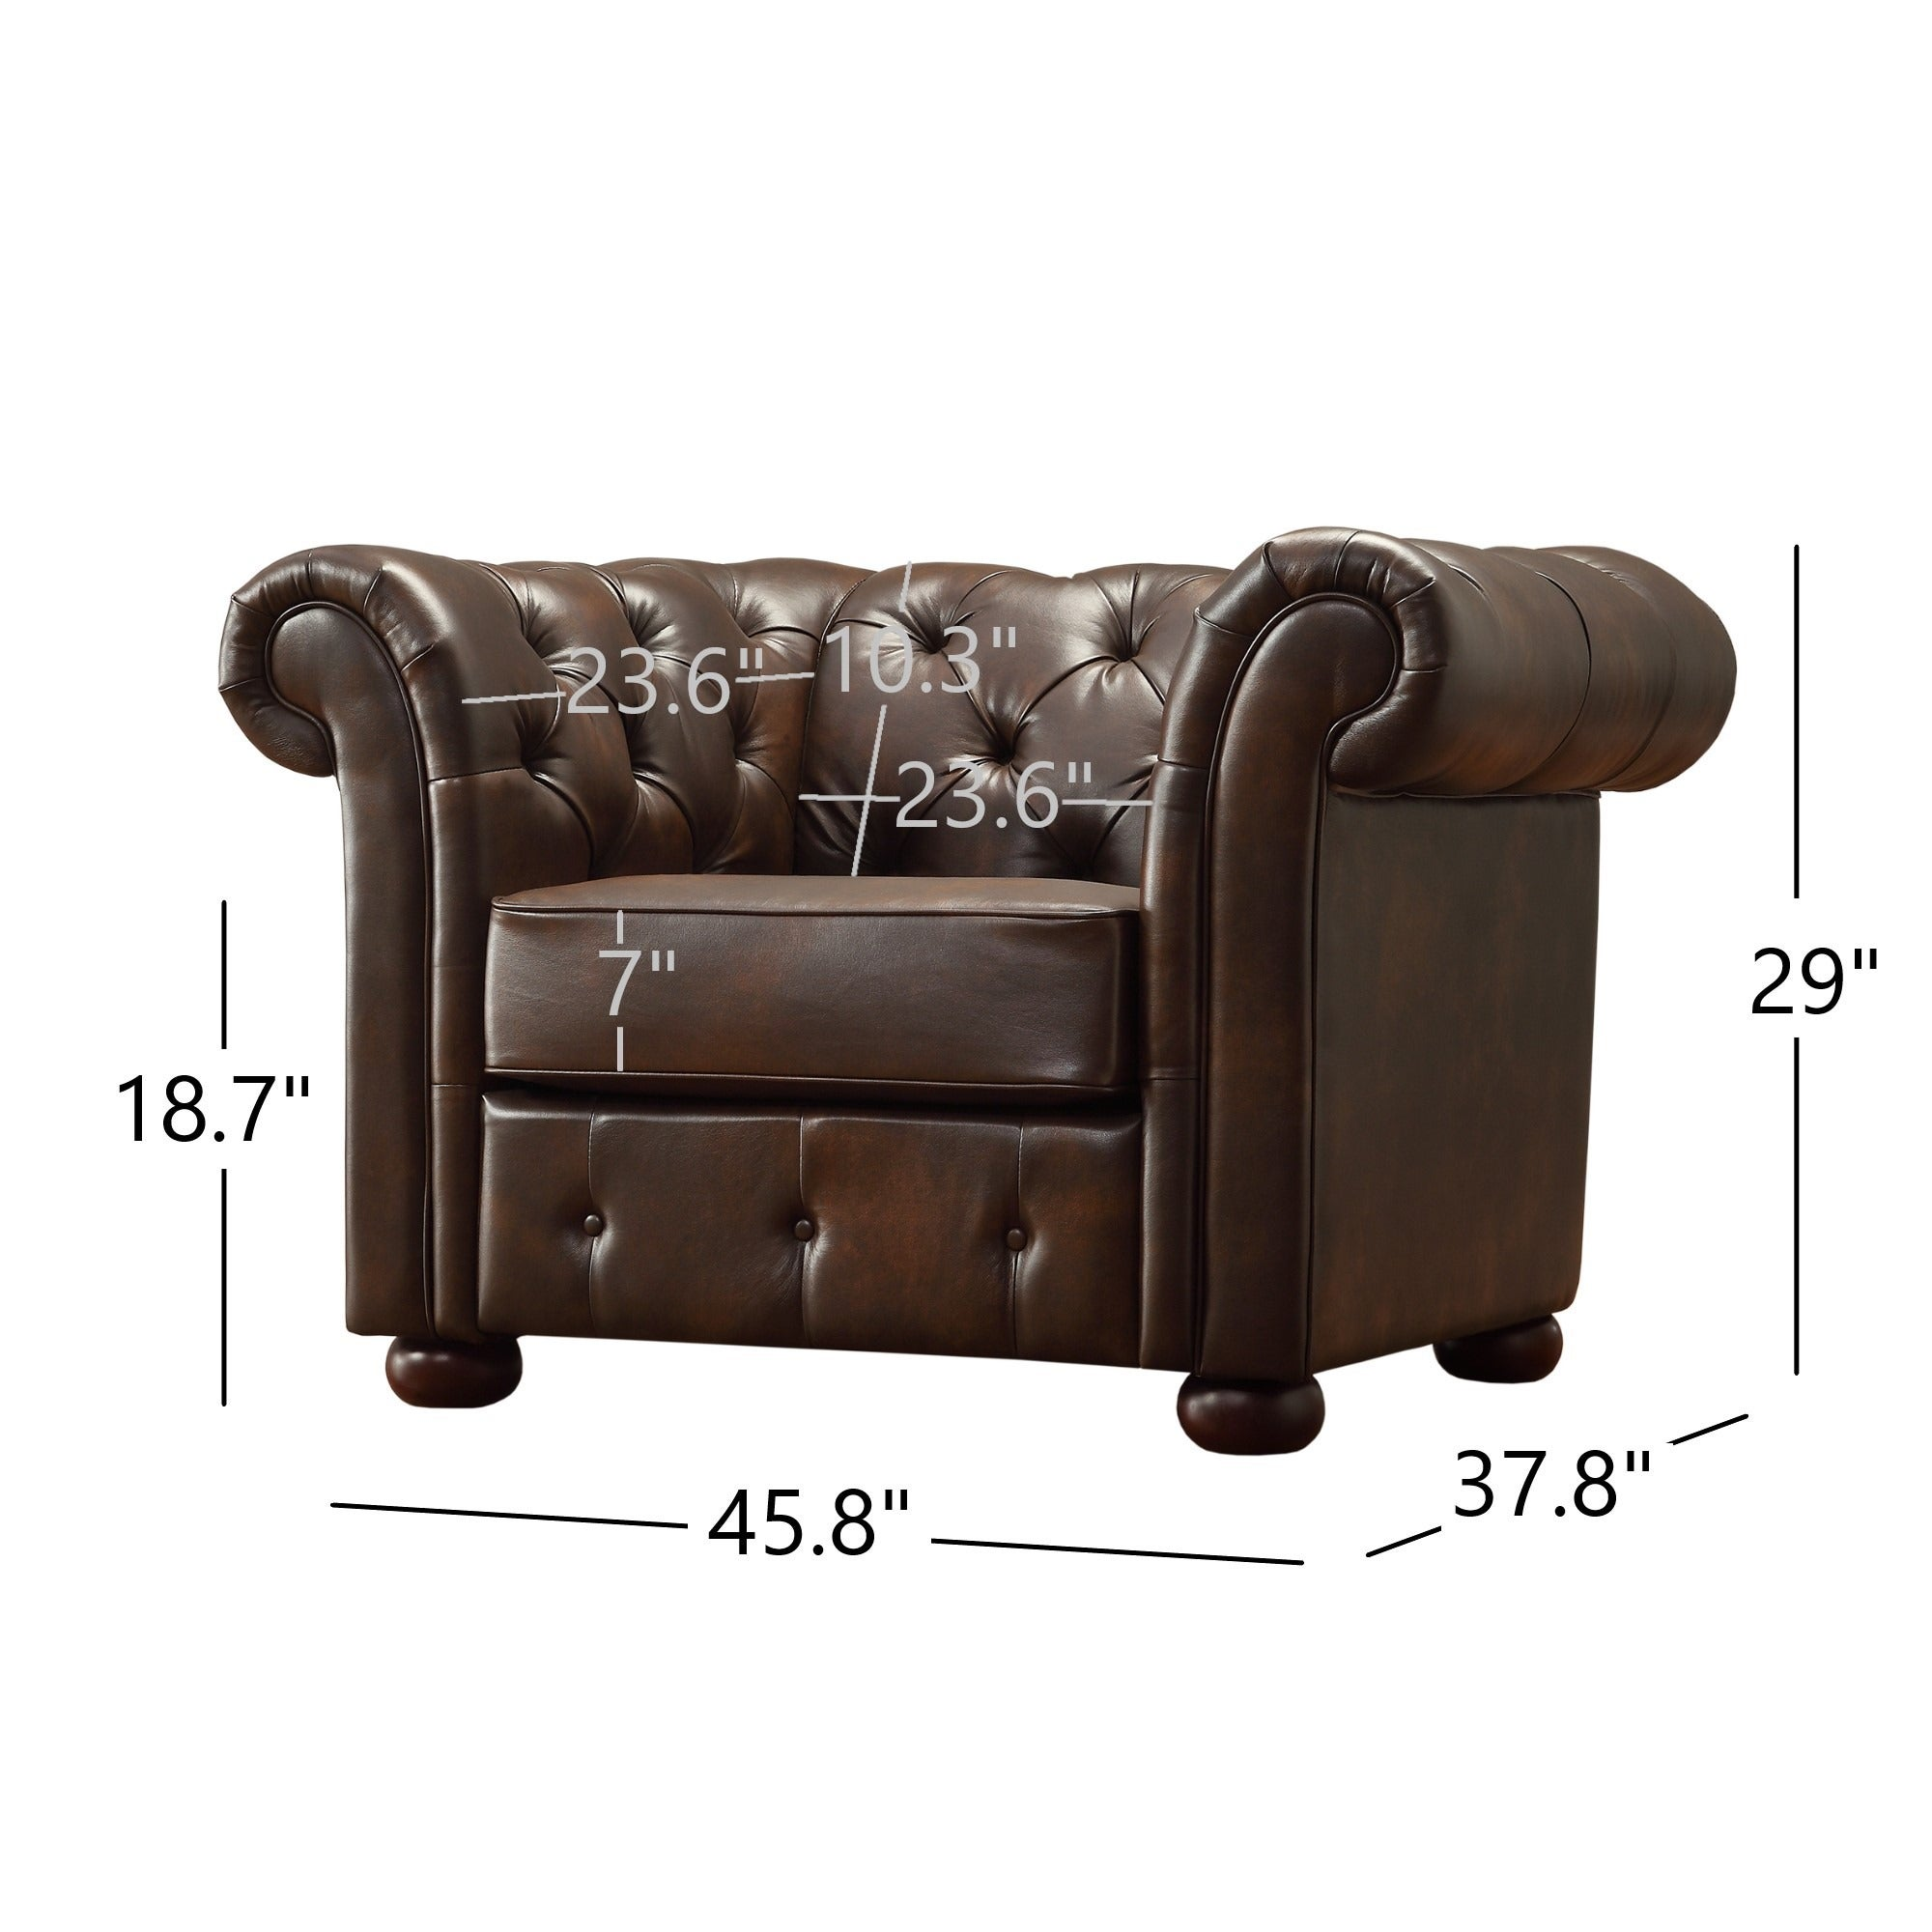 Attrayant Shop Knightsbridge Brown Bonded Leather Tufted Scroll Arm Chesterfield Chair  By INSPIRE Q Artisan   On Sale   Free Shipping Today   Overstock   9497908